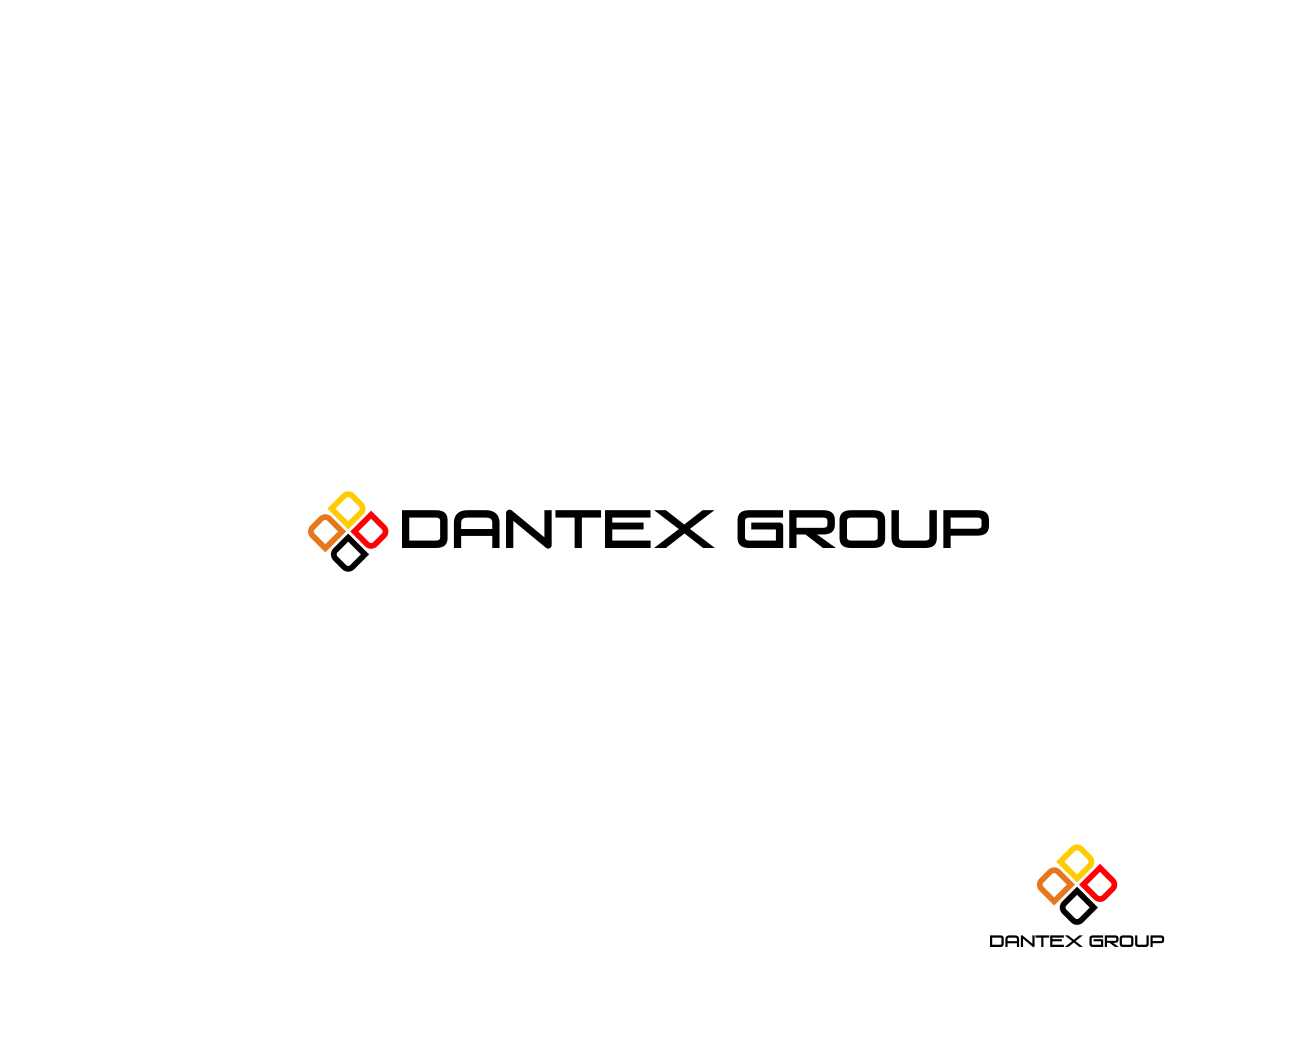 Конкурс на разработку логотипа для компании Dantex Group  фото f_2515bff06bf8b19f.png